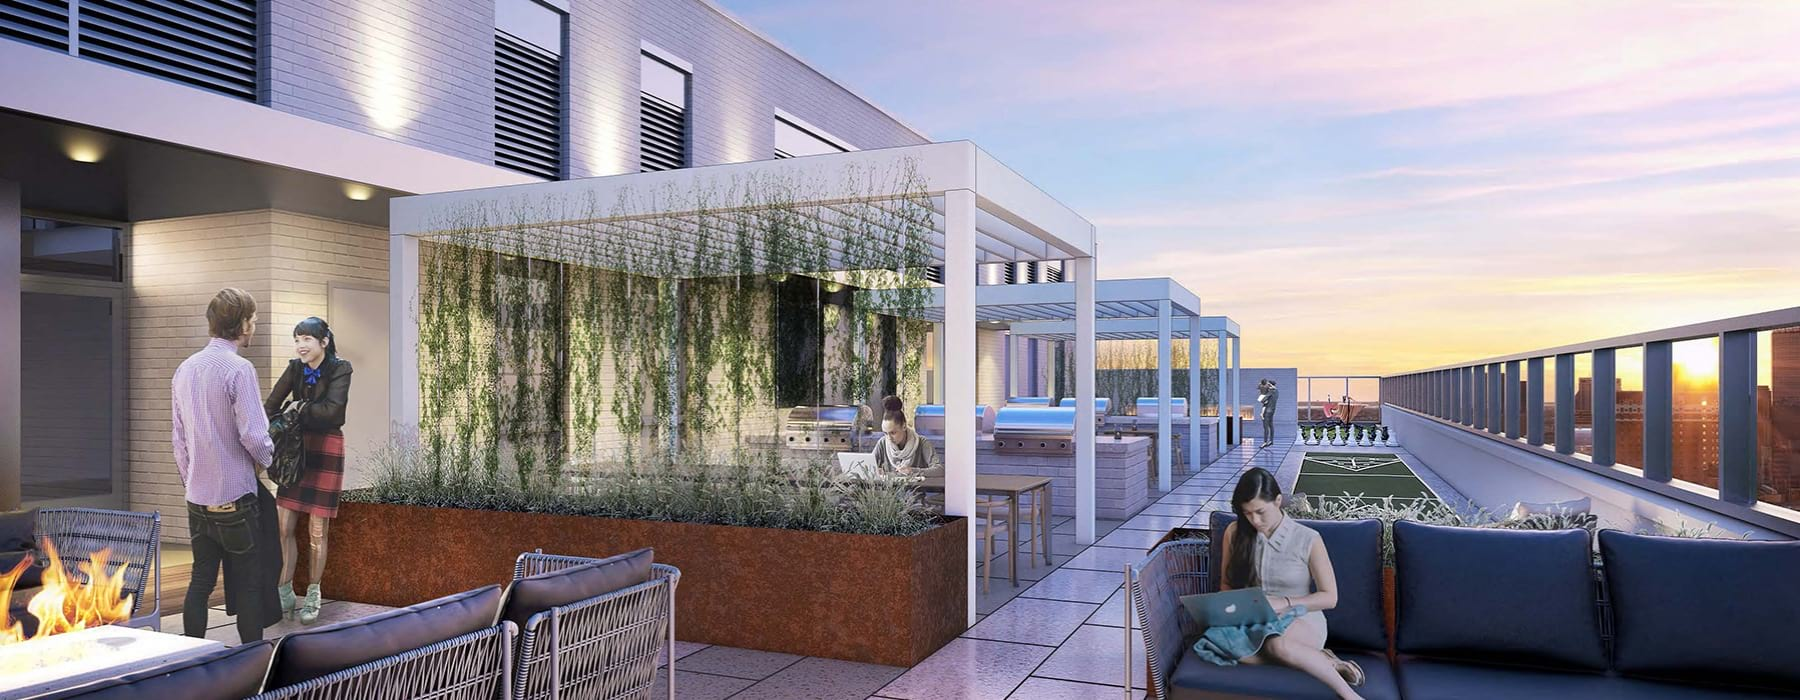 Rooftop pool and community lounge space